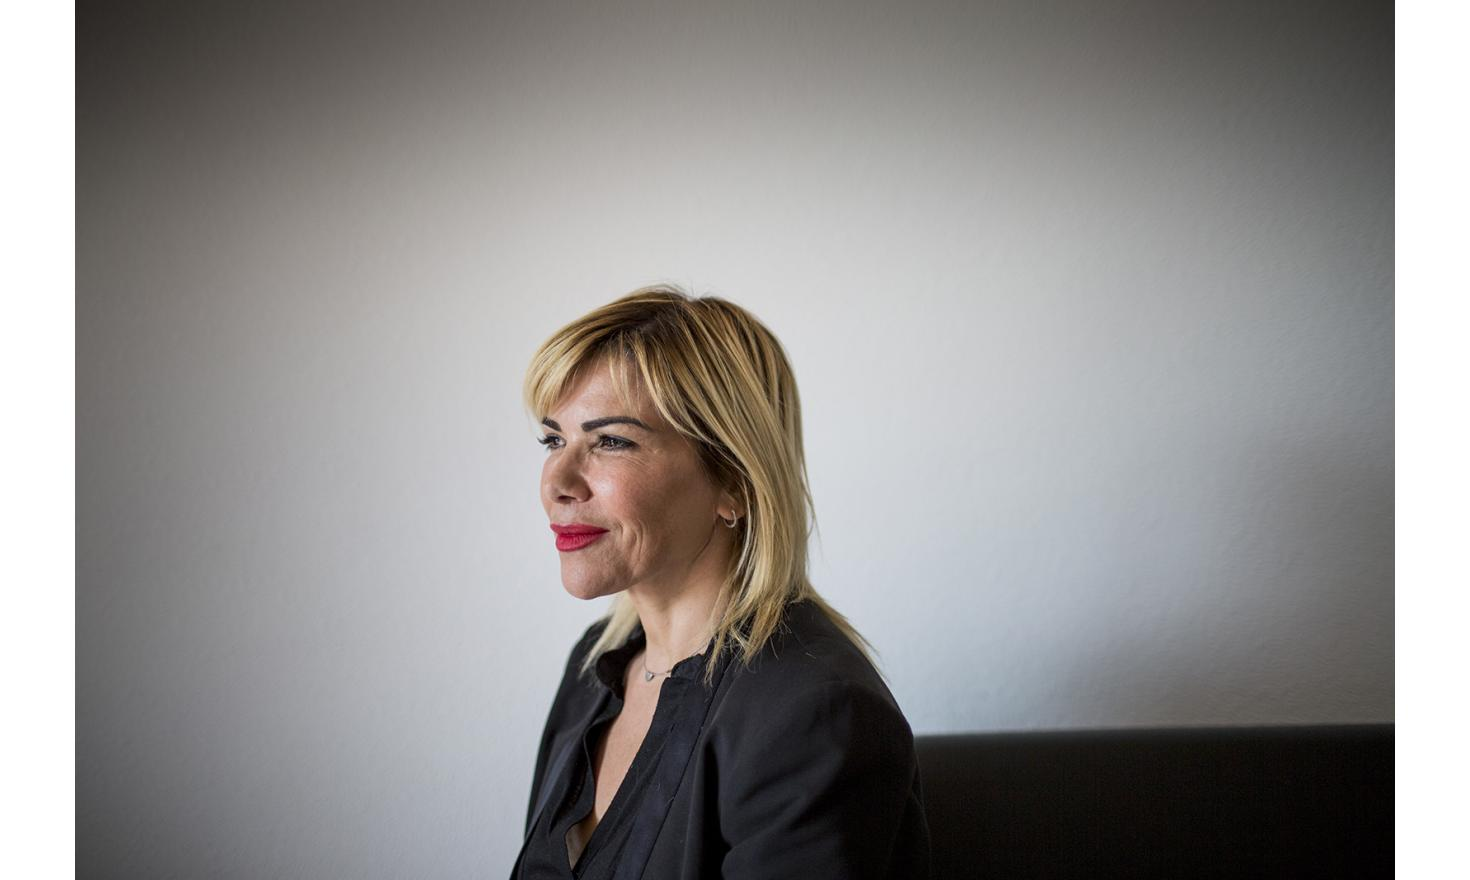 """Leila veils her fifty years with a cocktail of operatiosn and injections. """"I've always thought of my self as an ugly duckling. So today this helps me transmit the image I want of myself to thers. I am starting like mysel."""" Leila, Marseille, 3 May 2016"""